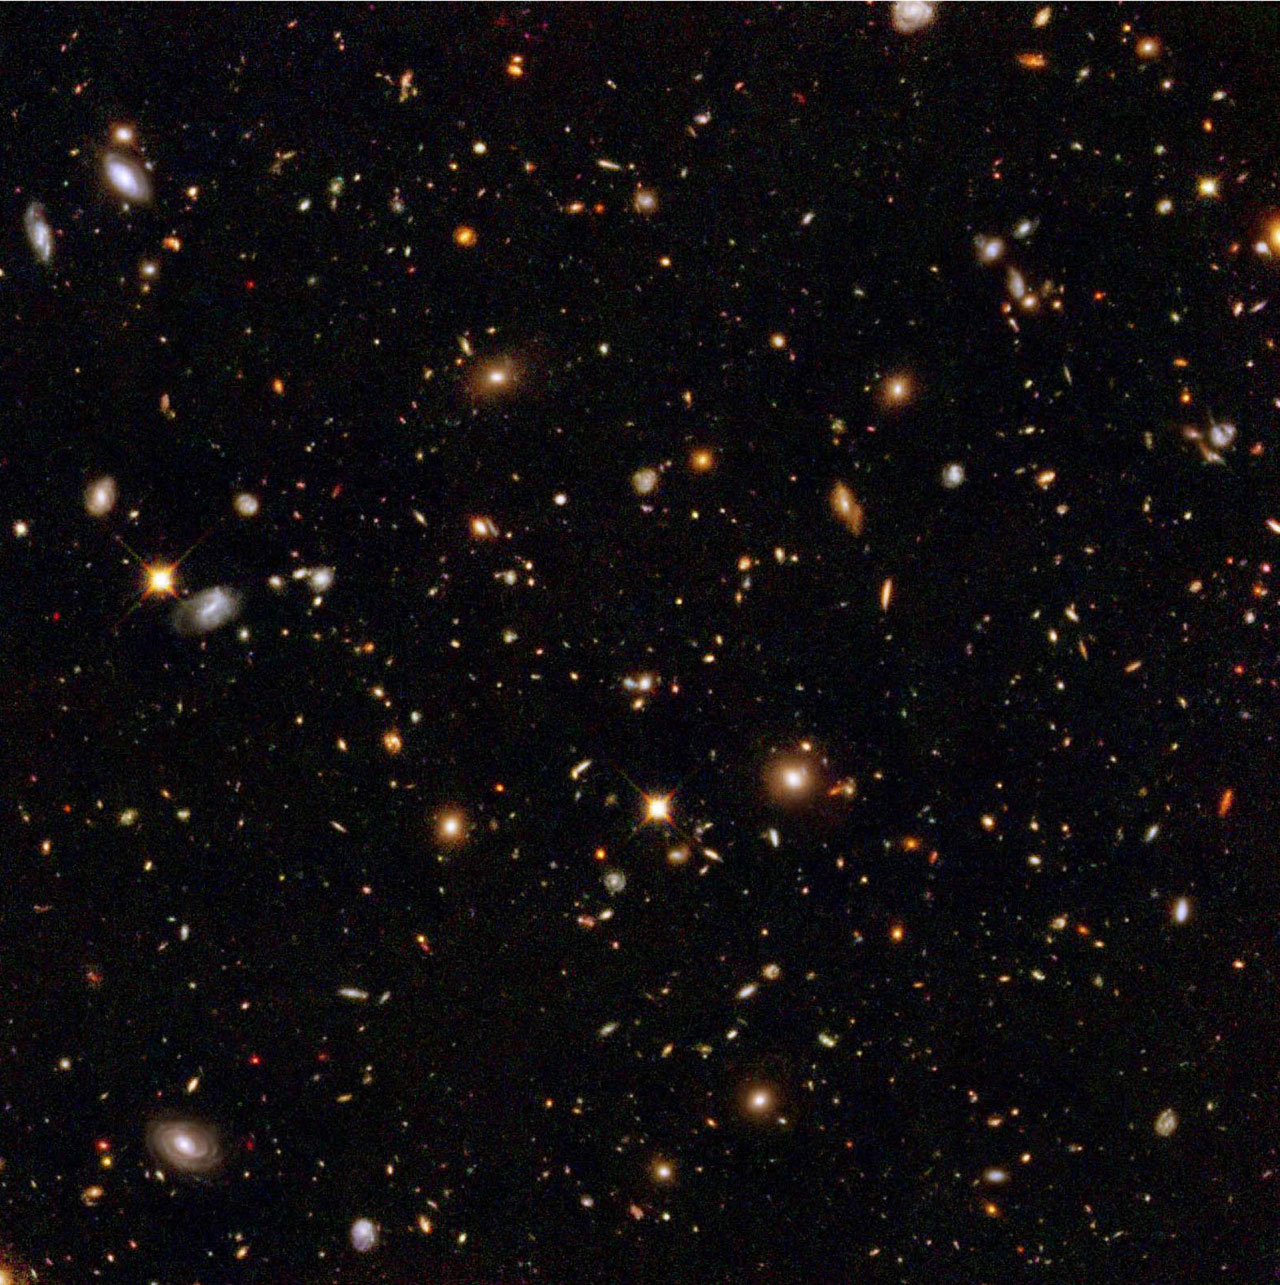 An estimated 10,000 galaxies are revealed in humankind's deepest portrait of the visible universe ever. Image and caption courtesy NASA/ESA/S. Beckwith(STScI) and The HUDF Team.